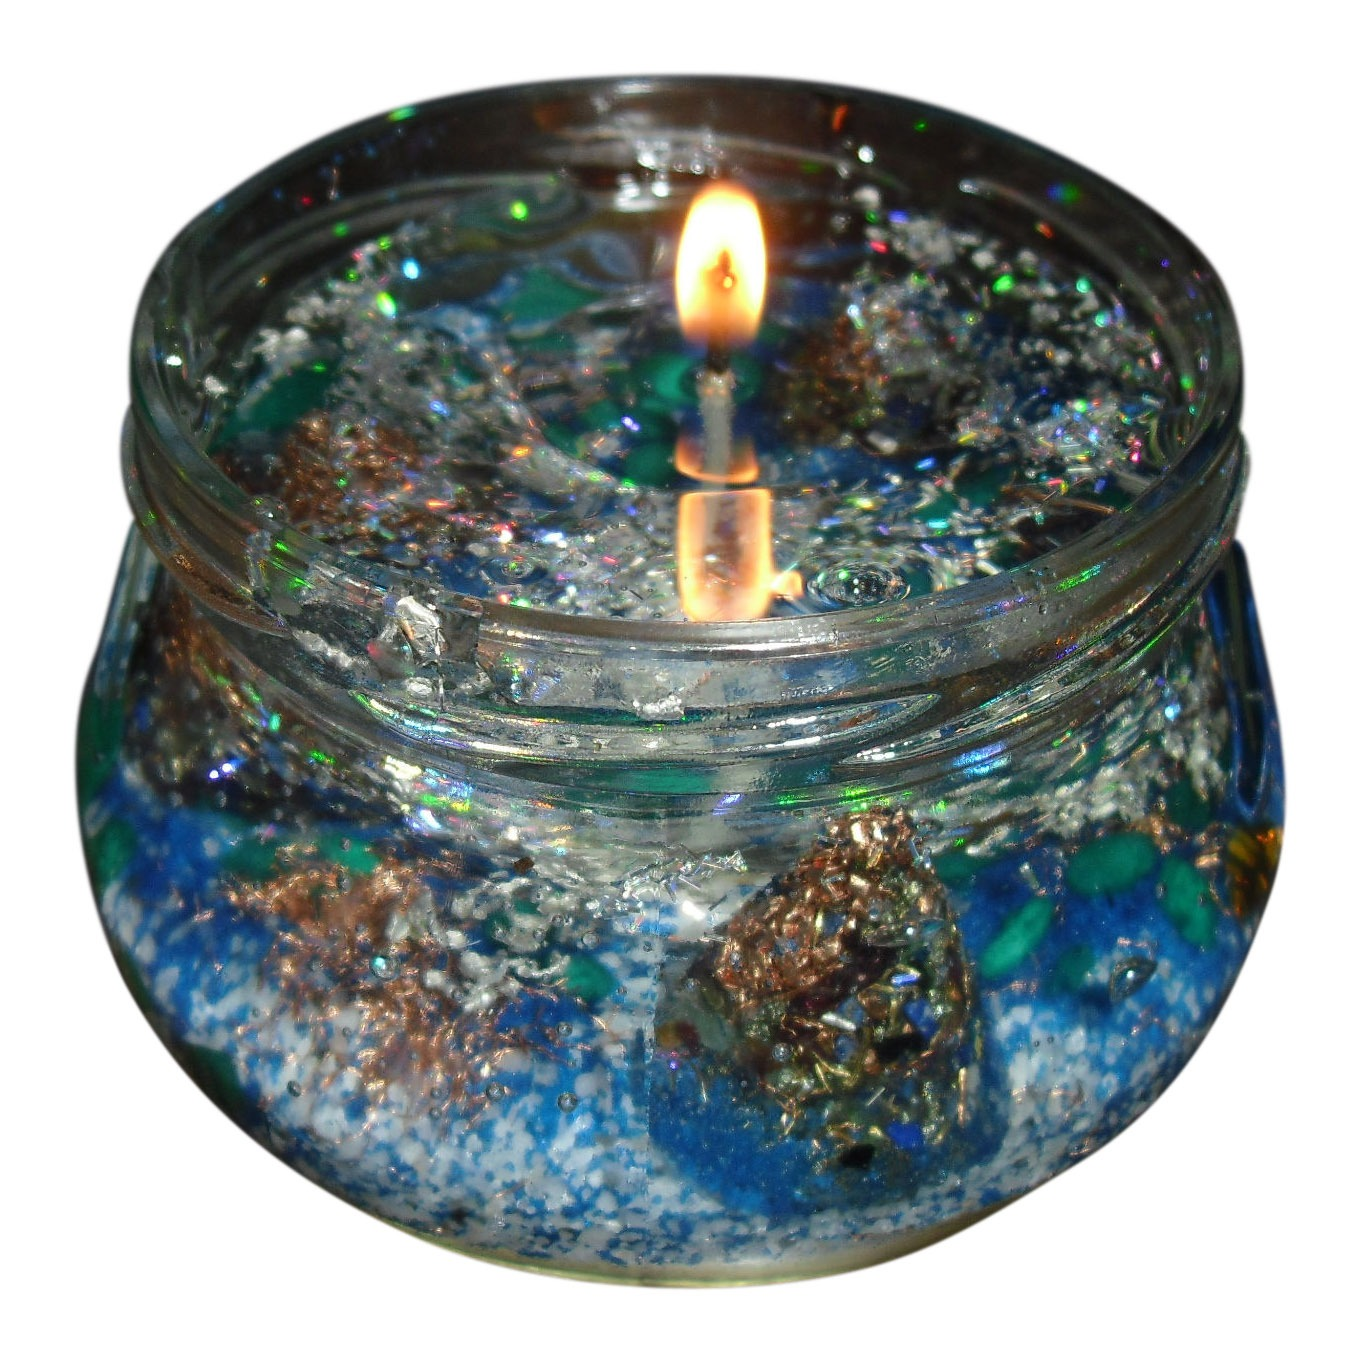 Gel Candles and Aromatherapy Oils Catalog